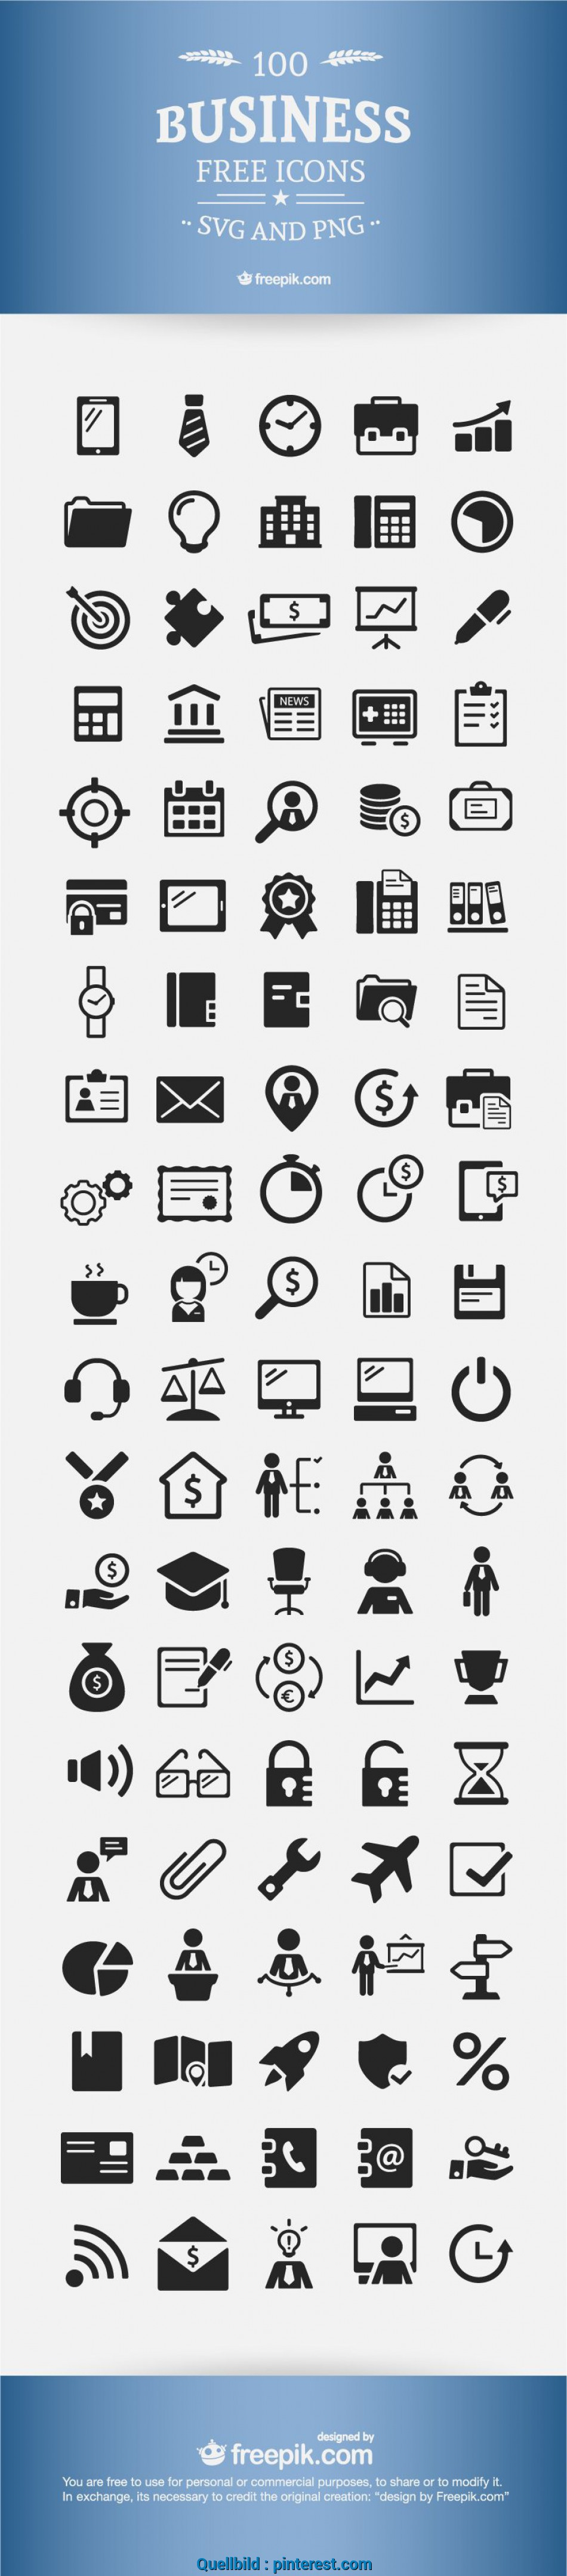 Frisch Download] Free Business Icons, 100% Vectors, Free Stuff